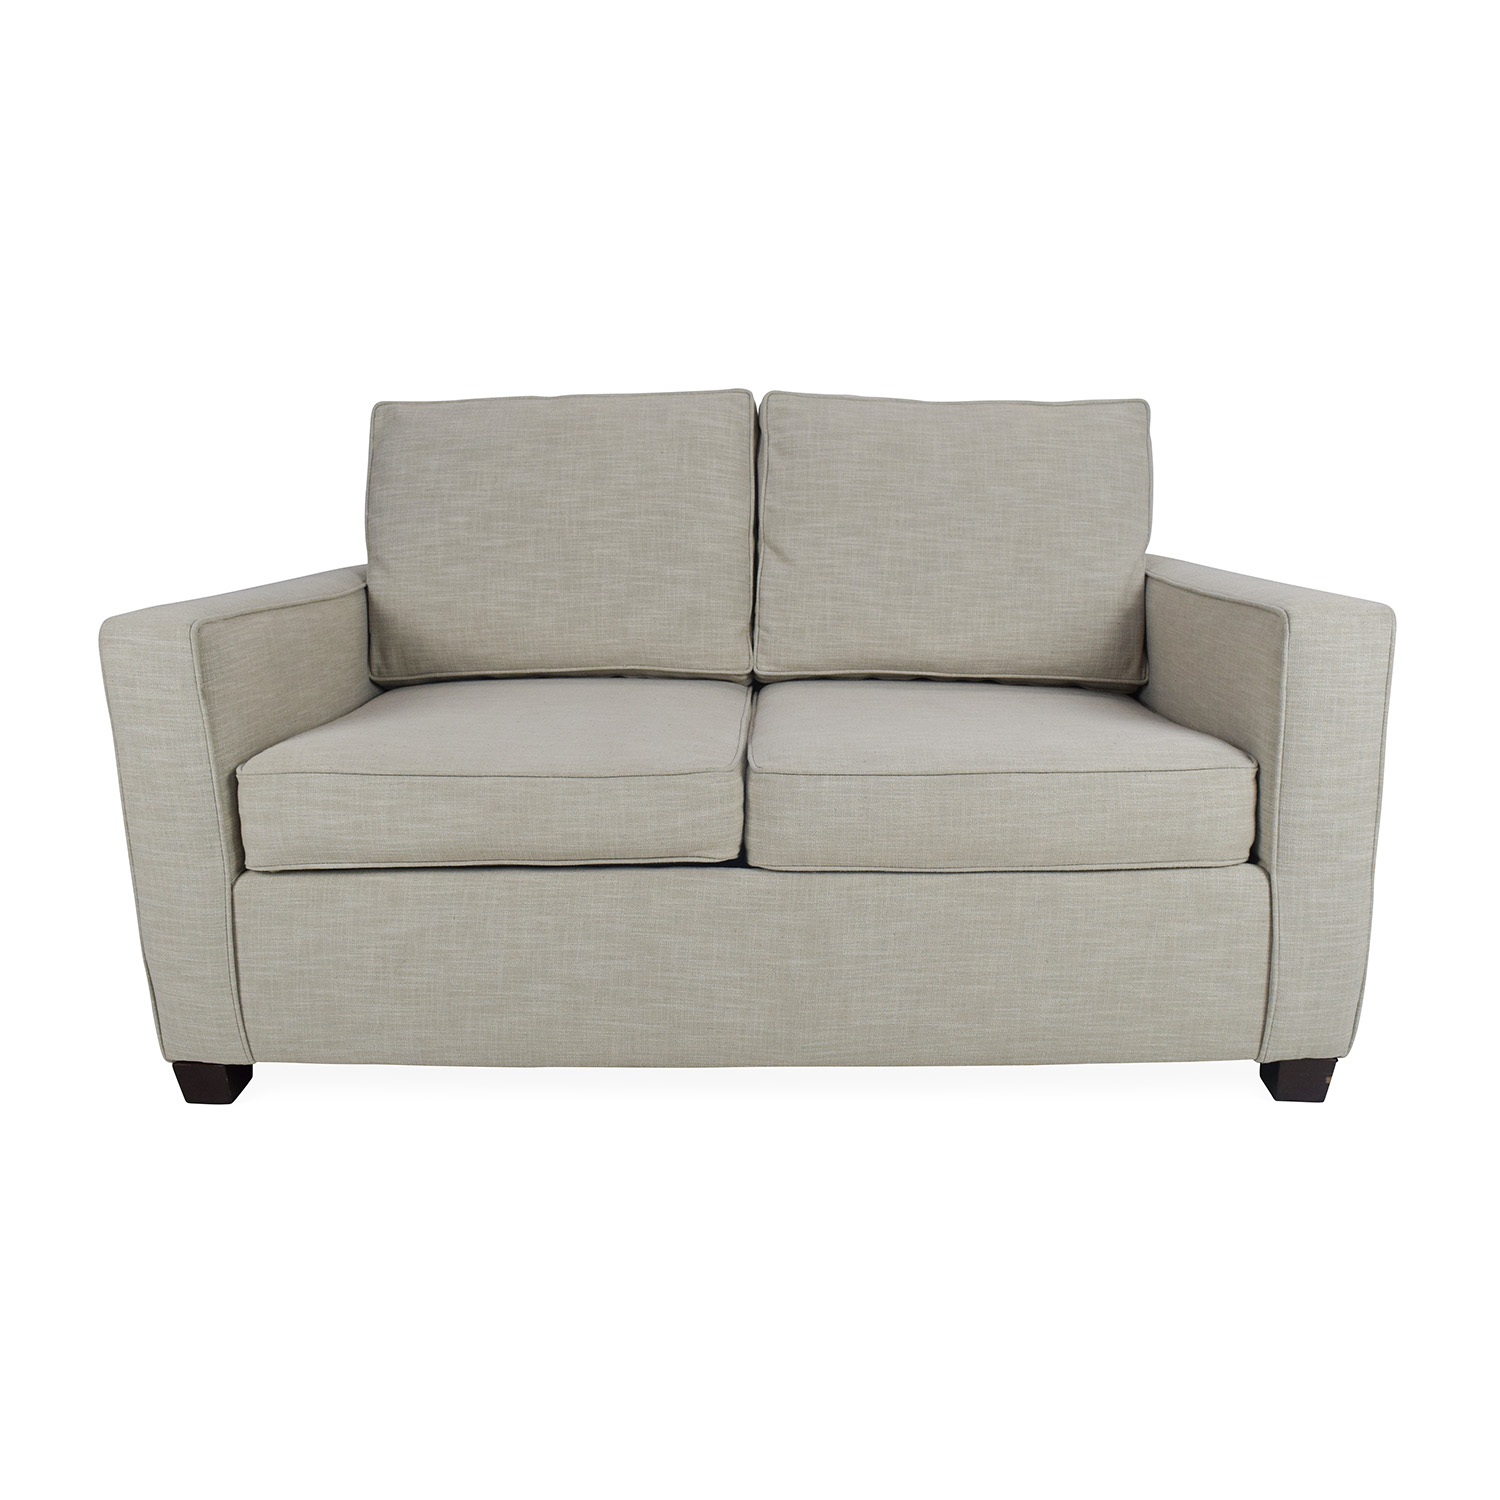 Sleeper Sofa Loveseat Sale Ikea Loveseat Sleeper Home Decor Ikea Best Ikea Loveseat Loveseat